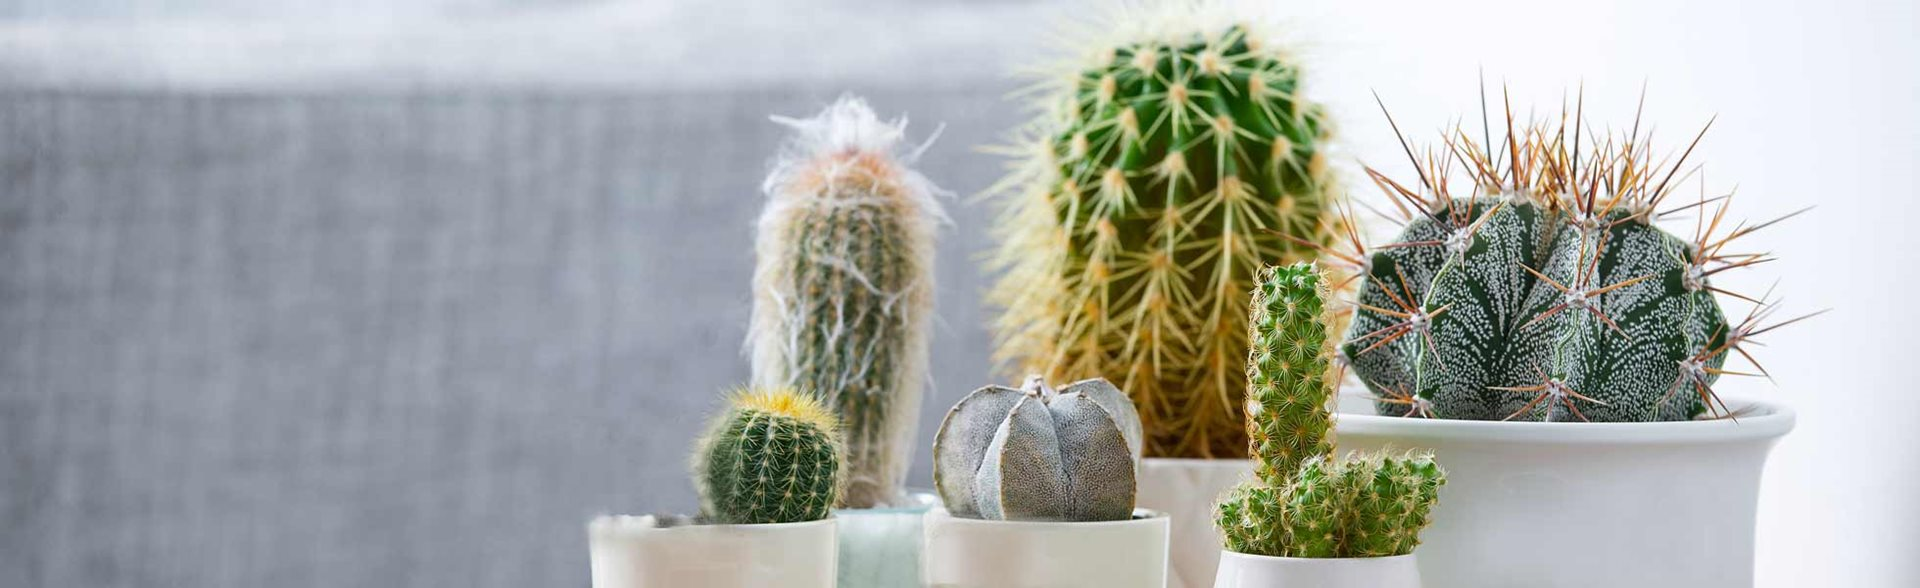 Cacti and succulents in white pots